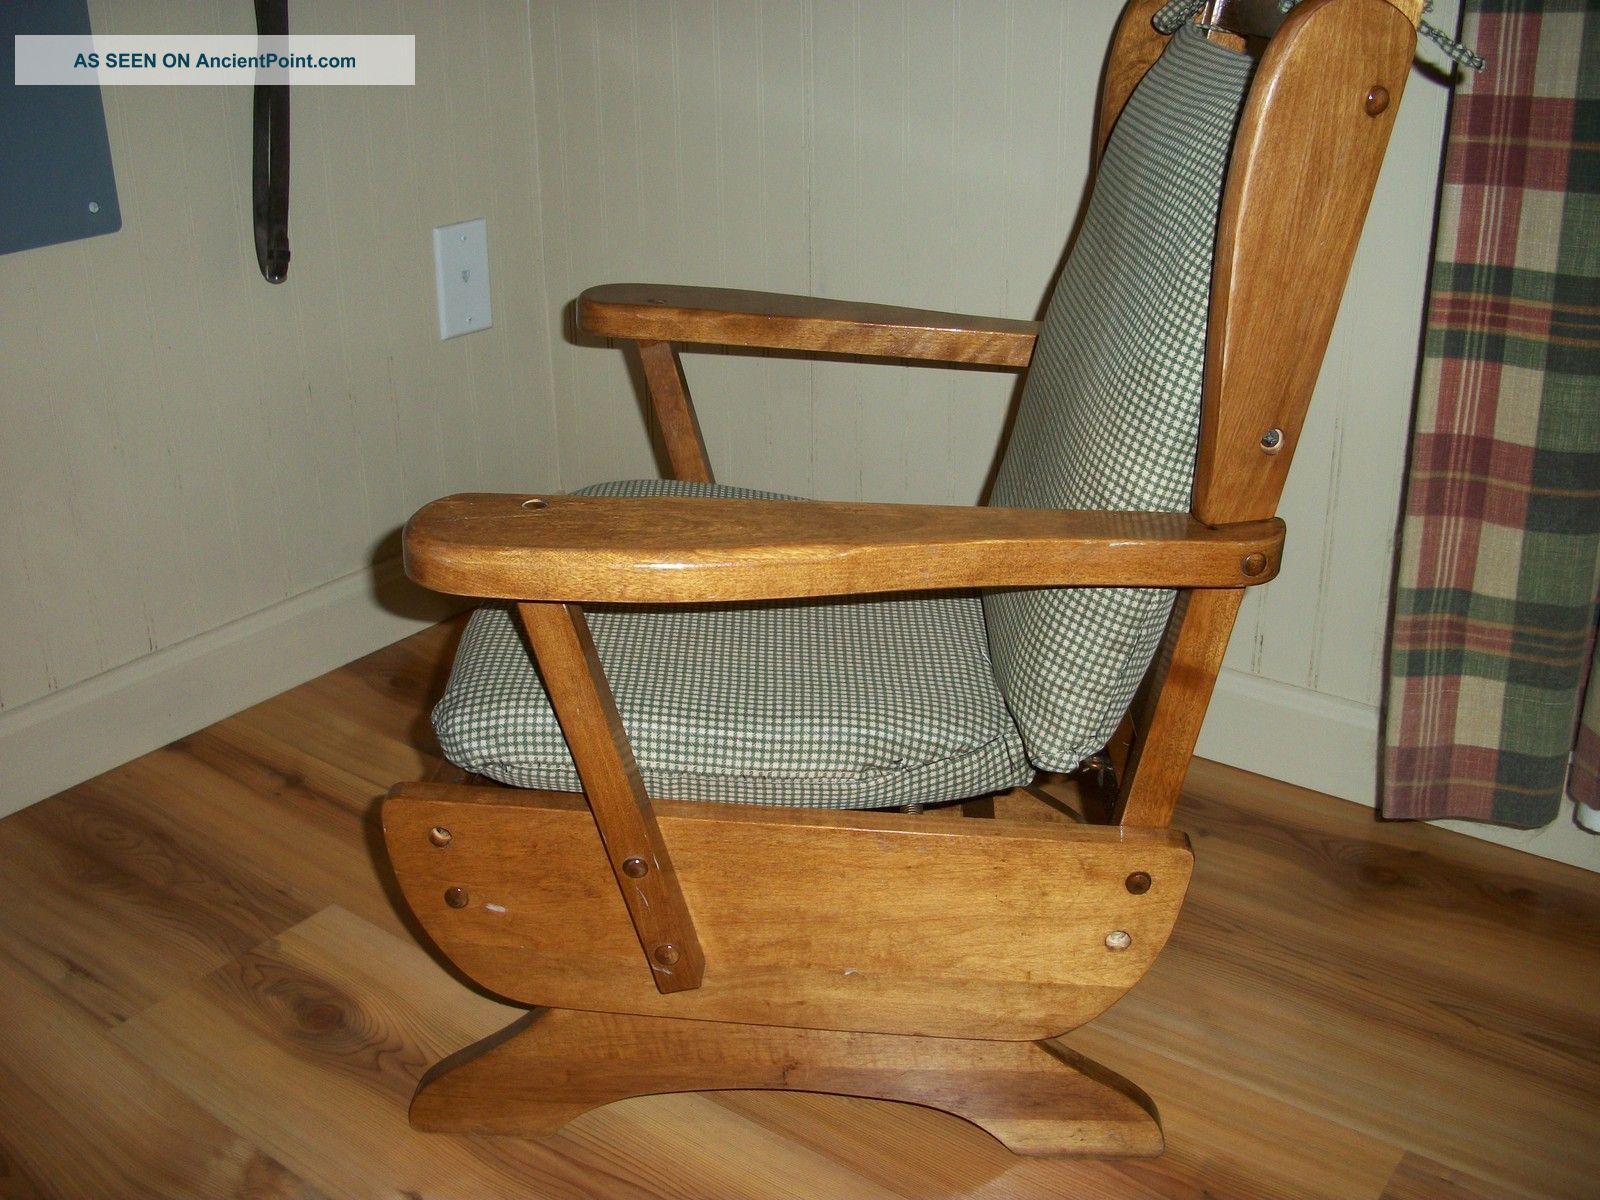 Vintage childrens wooden rocking chair with cushion primitives photo 3